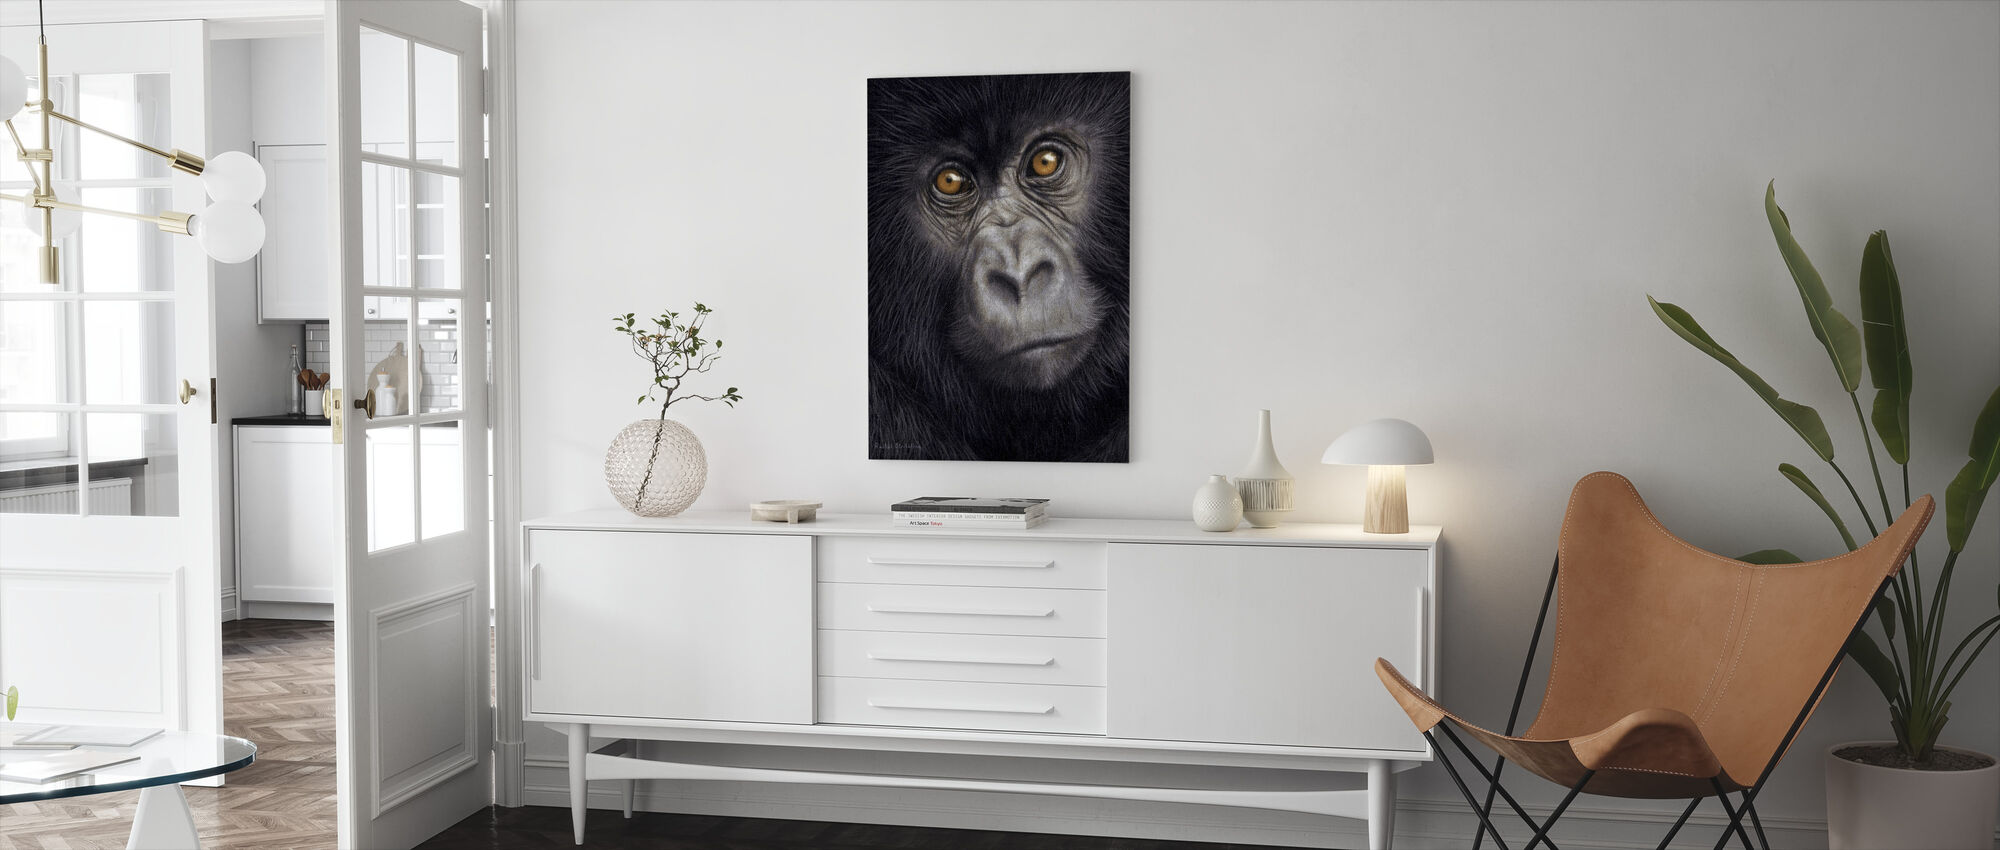 Young Mountain Gorilla - Canvas print - Living Room